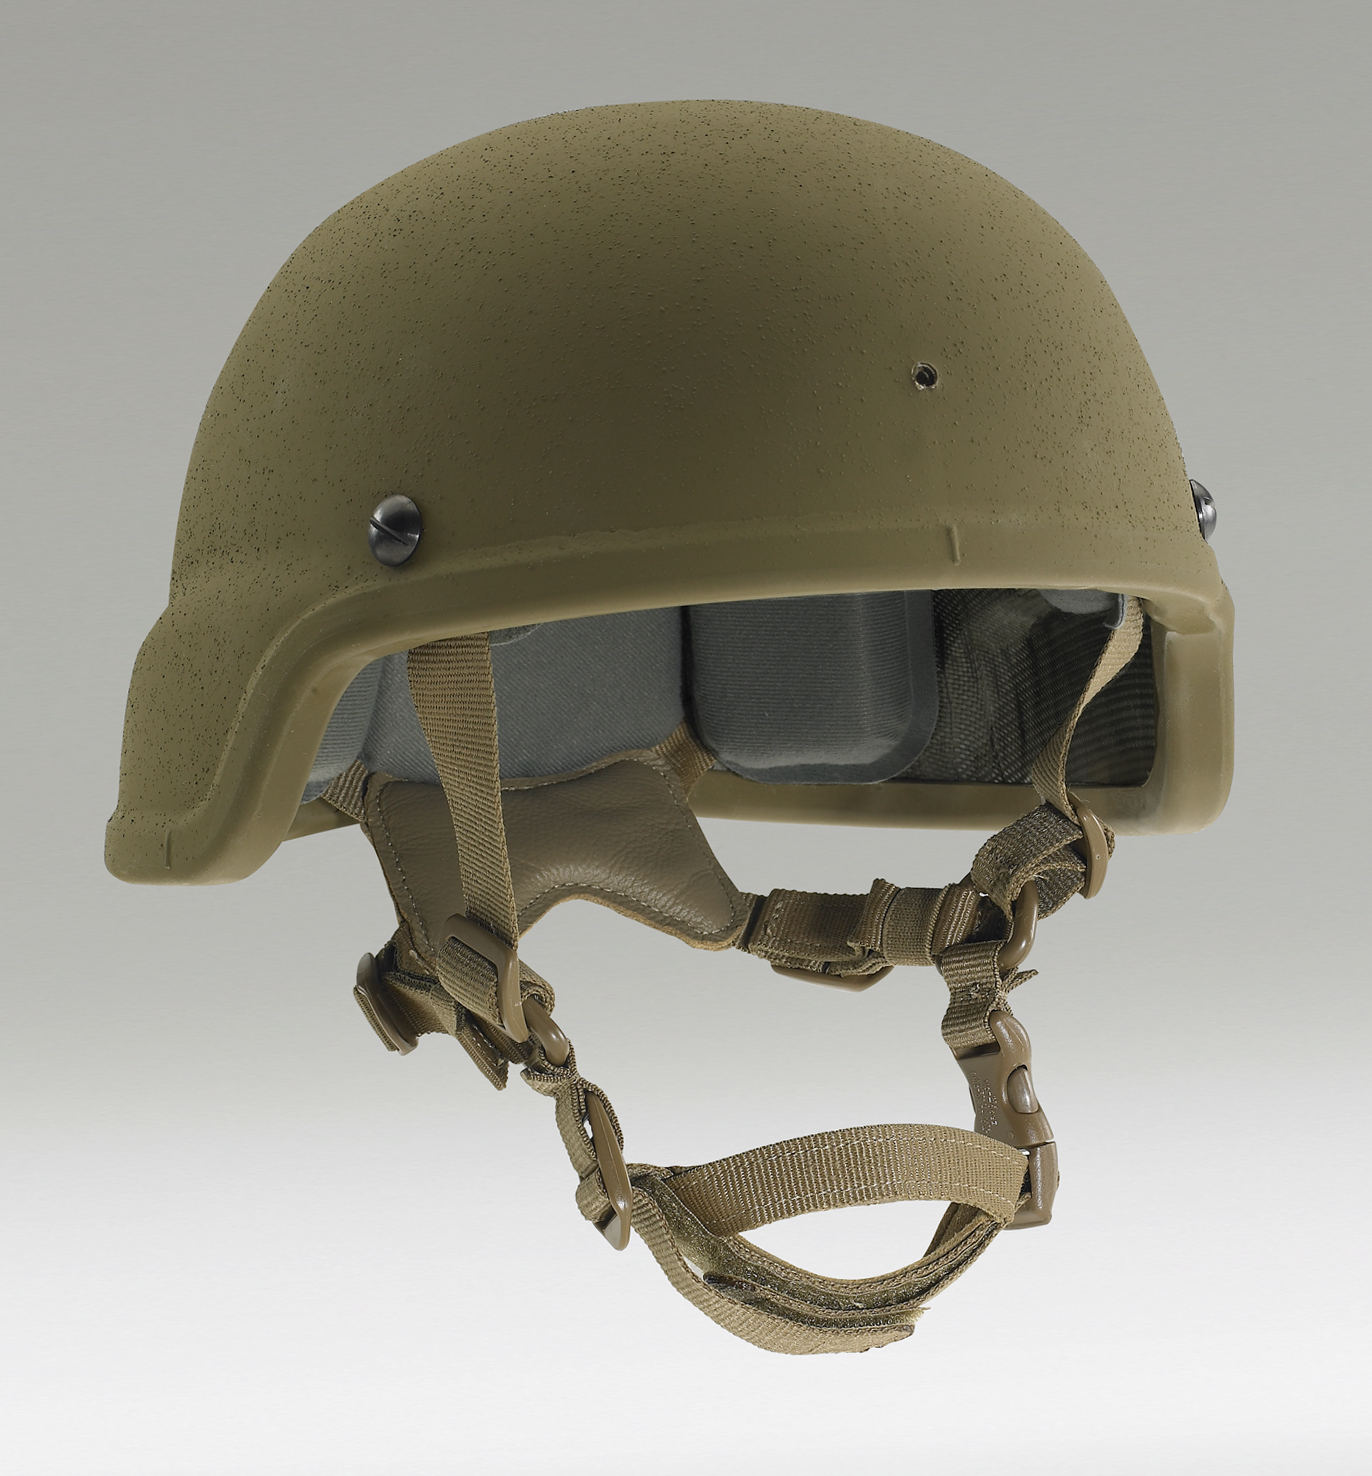 3M to Supply Enhanced Combat Helmets to United States Marine Corps | 3M News | United States